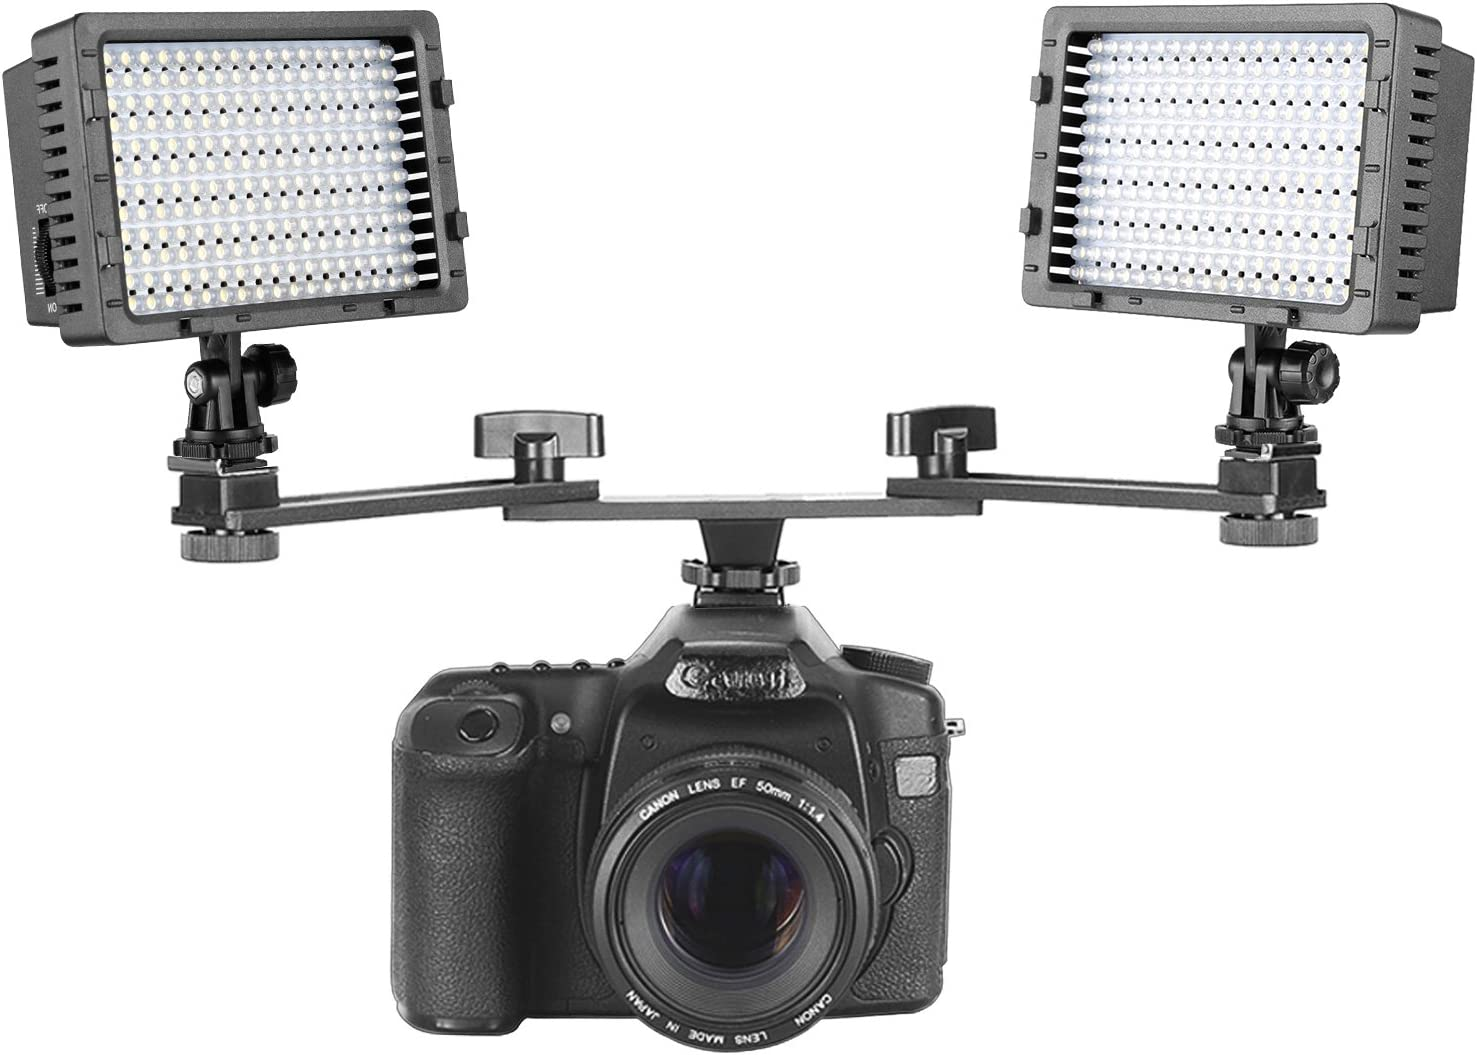 and Olympus DSLRs Nikon Pentax Neewer 2-Pack CN-160 160 LED Dimmable 5600K Ultra High Power Panel Camera Video Light with 7 inches //18 Centimeters Dual Mount Bracket Arm for Canon Sony Panasonic